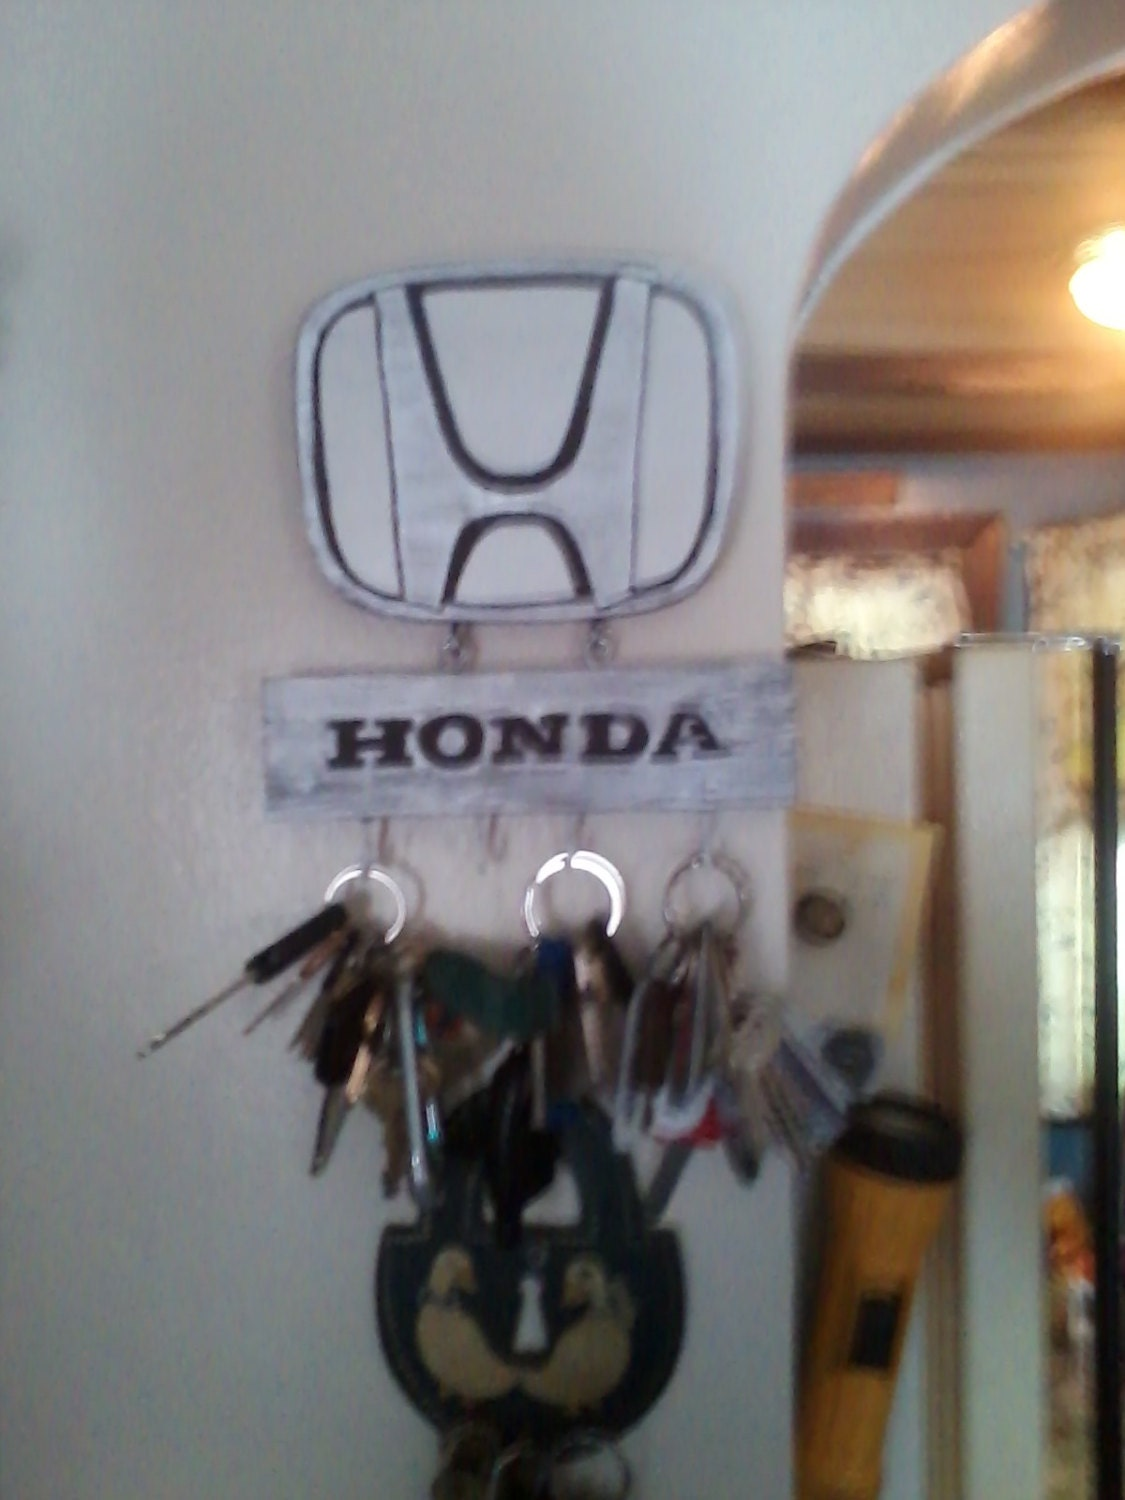 Http Www Etsy Com Listing 157964453 Home Decor Honda Key Chain Holder Home